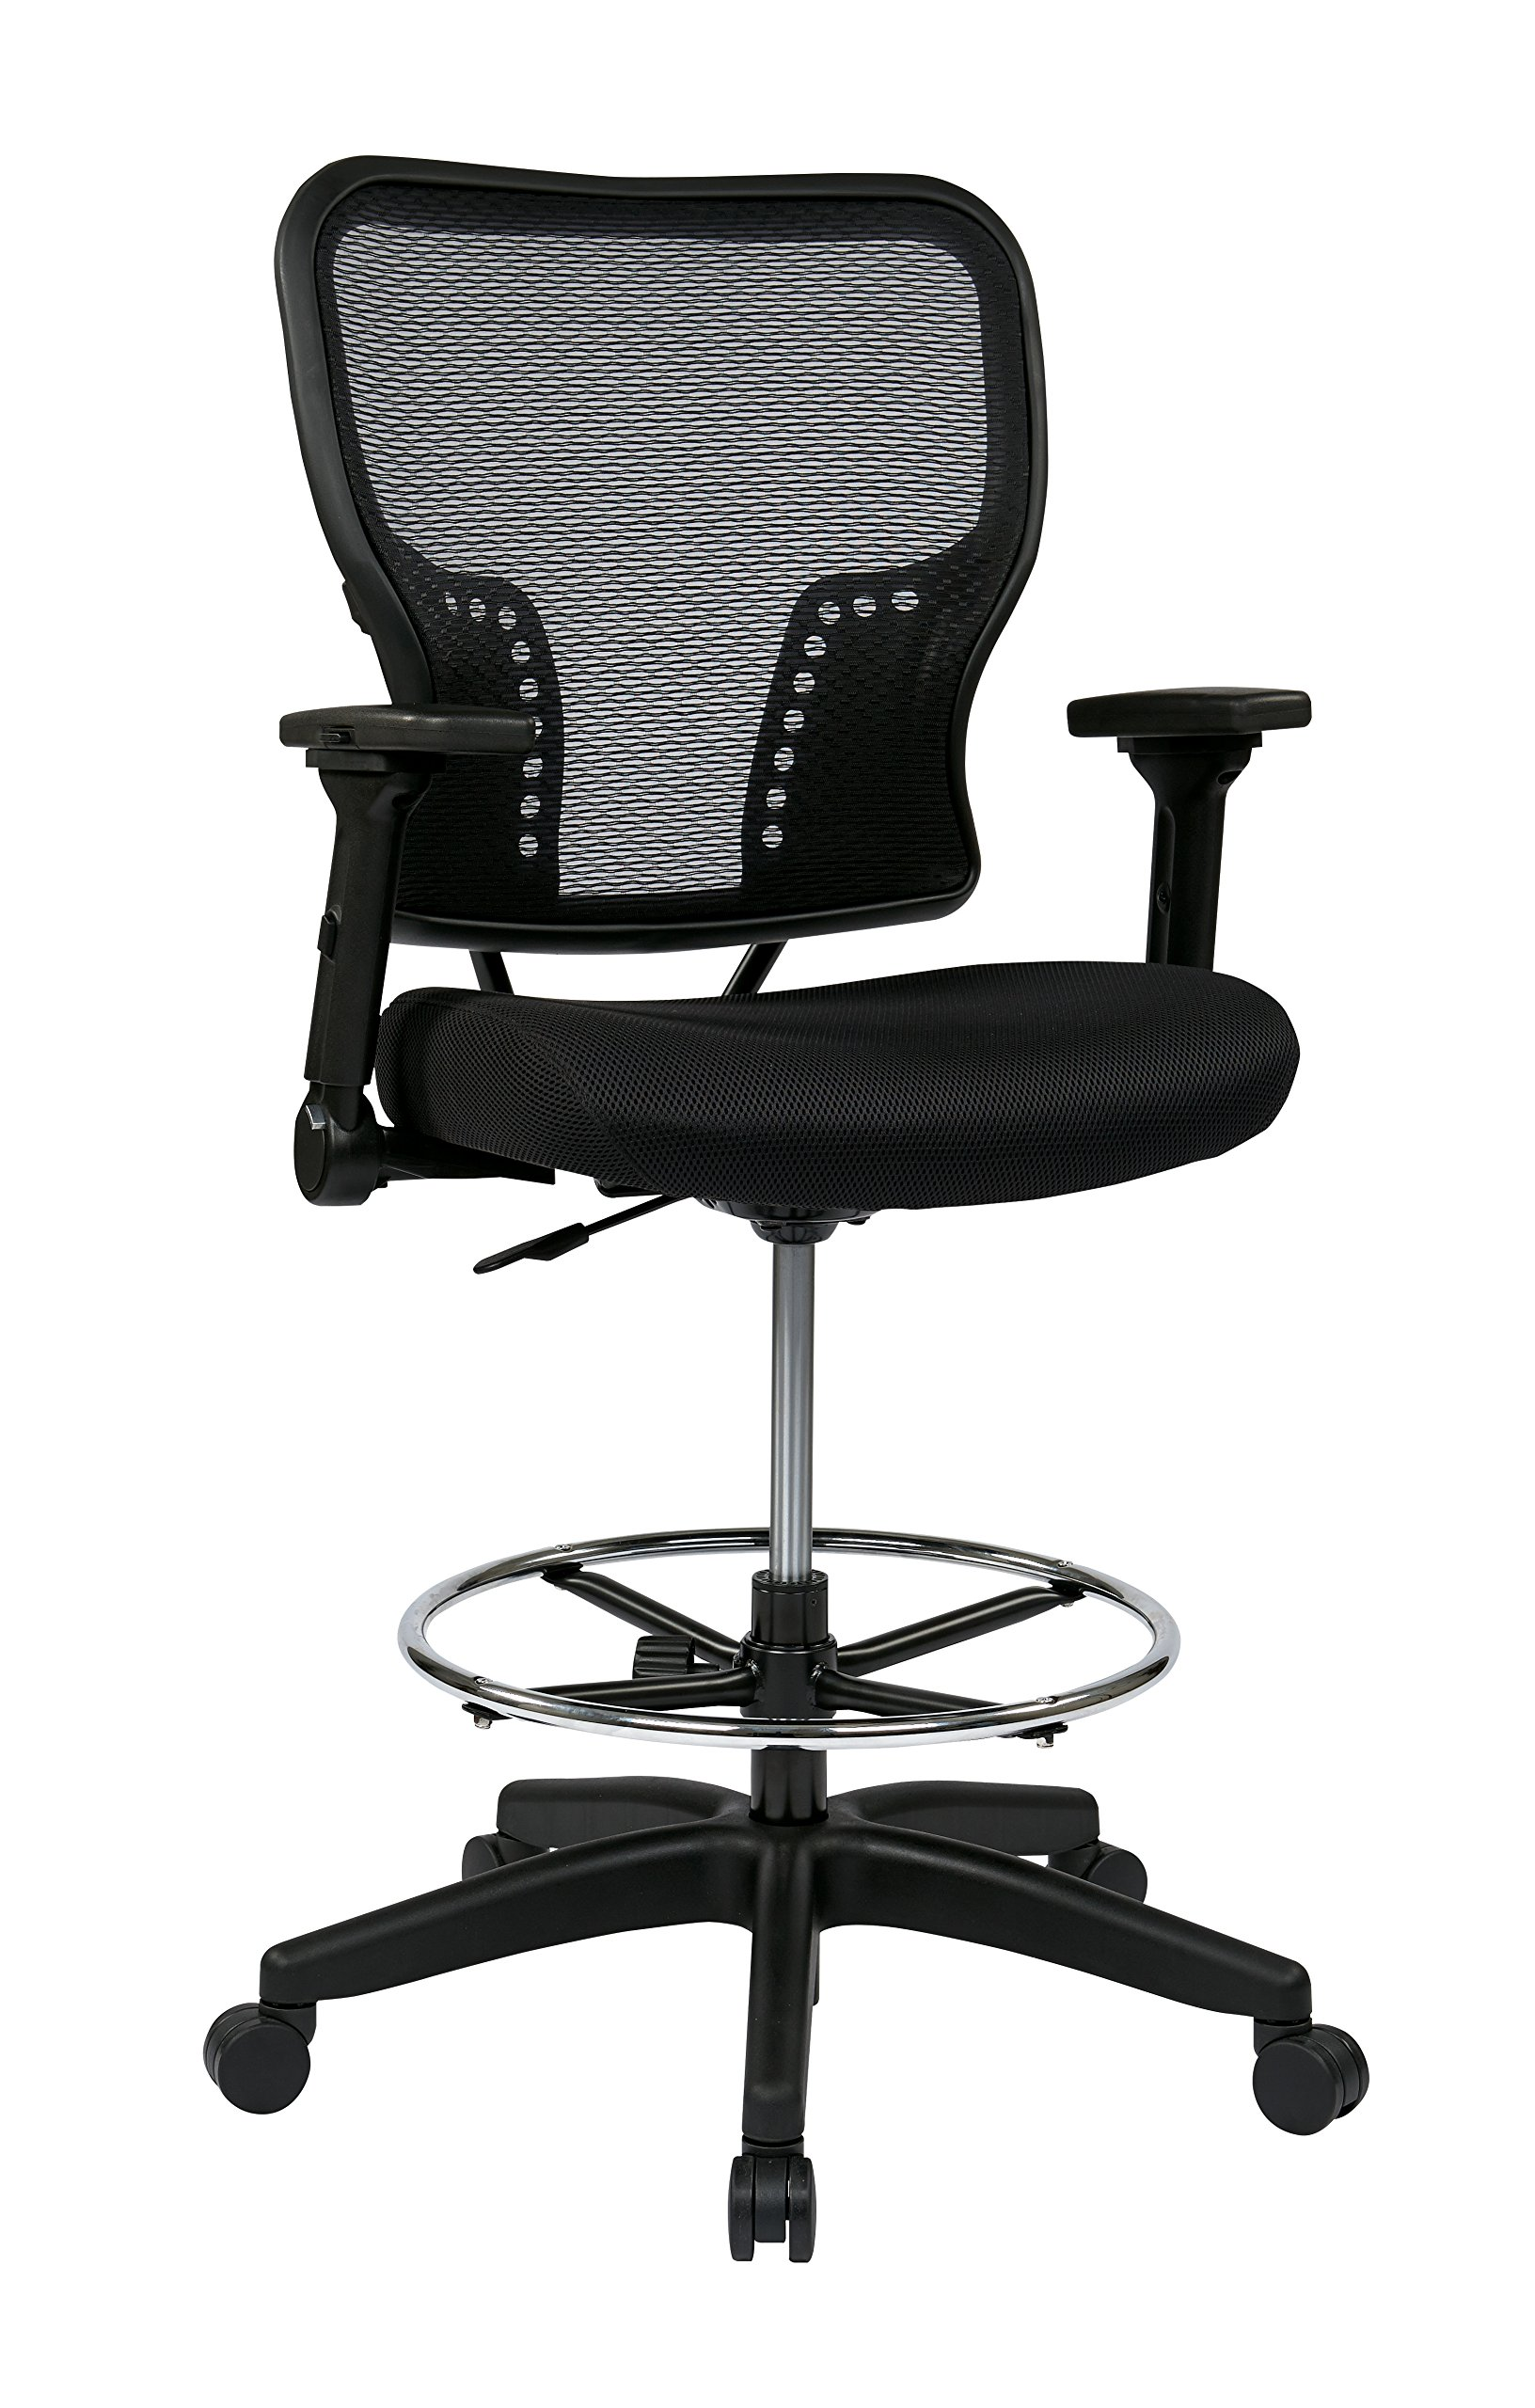 SPACE Seating Deluxe AirGrid Back and Padded Mesh Seat, Pneumatic Seat Height Adjustment and 4-Way Adjustable Flip Arms Managers Chair, Black by Space Seating